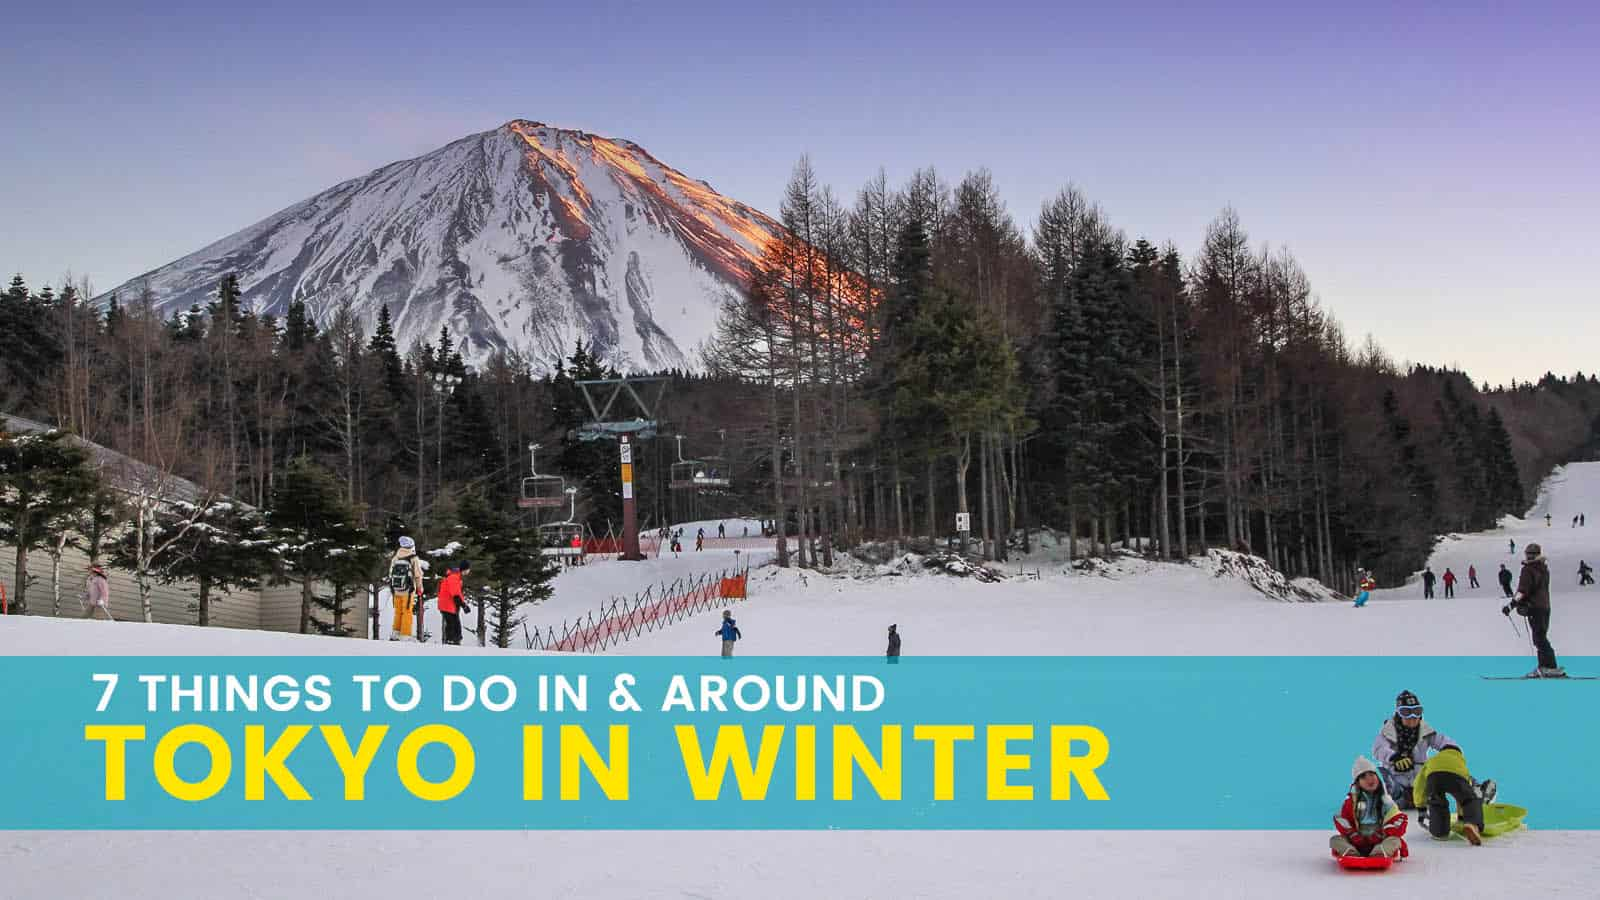 TOKYO IN WINTER: 7 Awesome Things to Do and Places to Visit